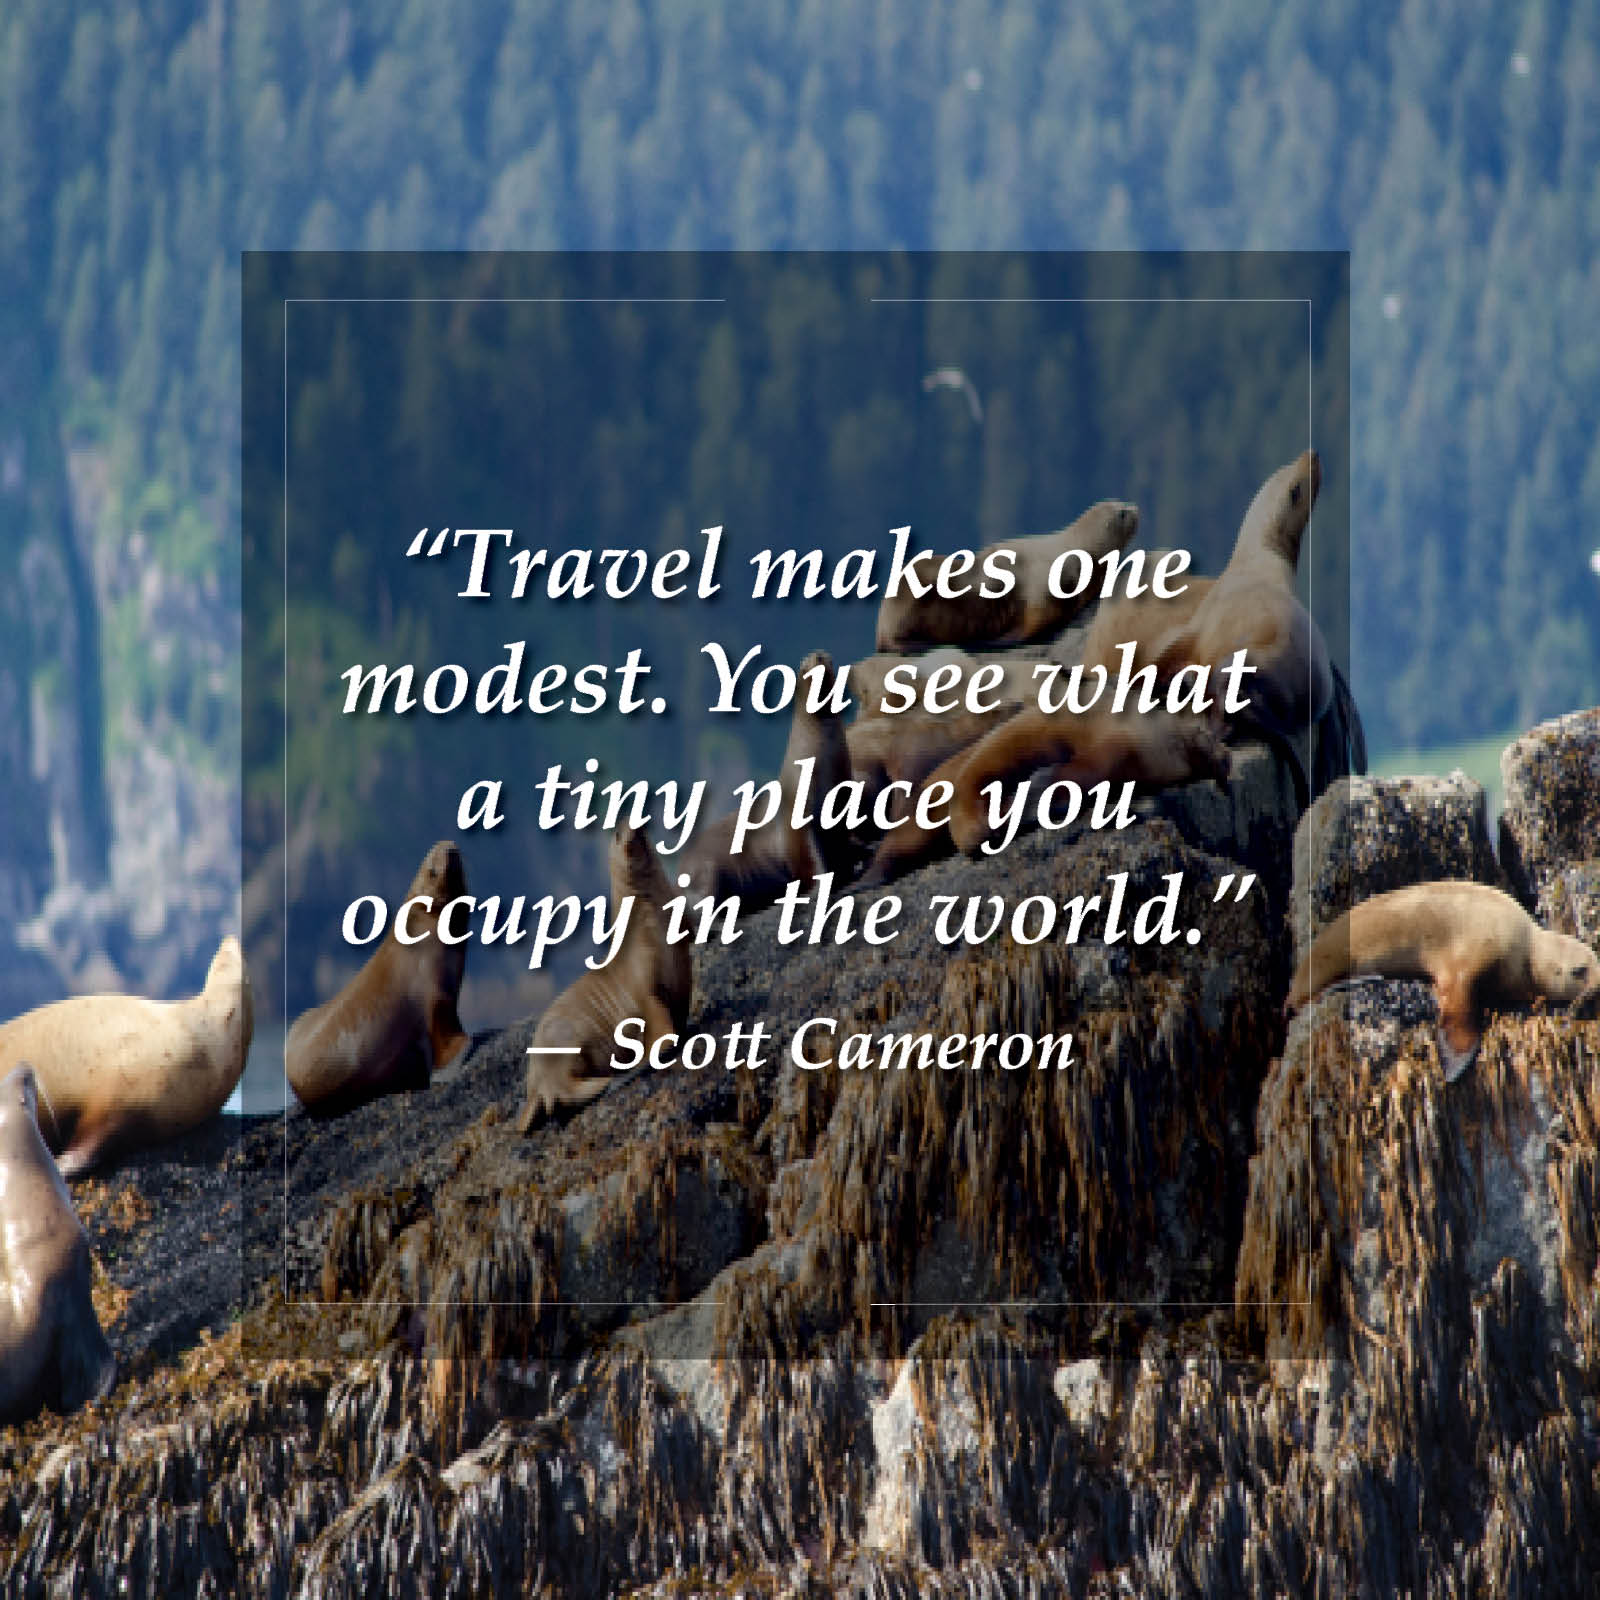 ymt-blog-wanderlust-travel-quotes-23